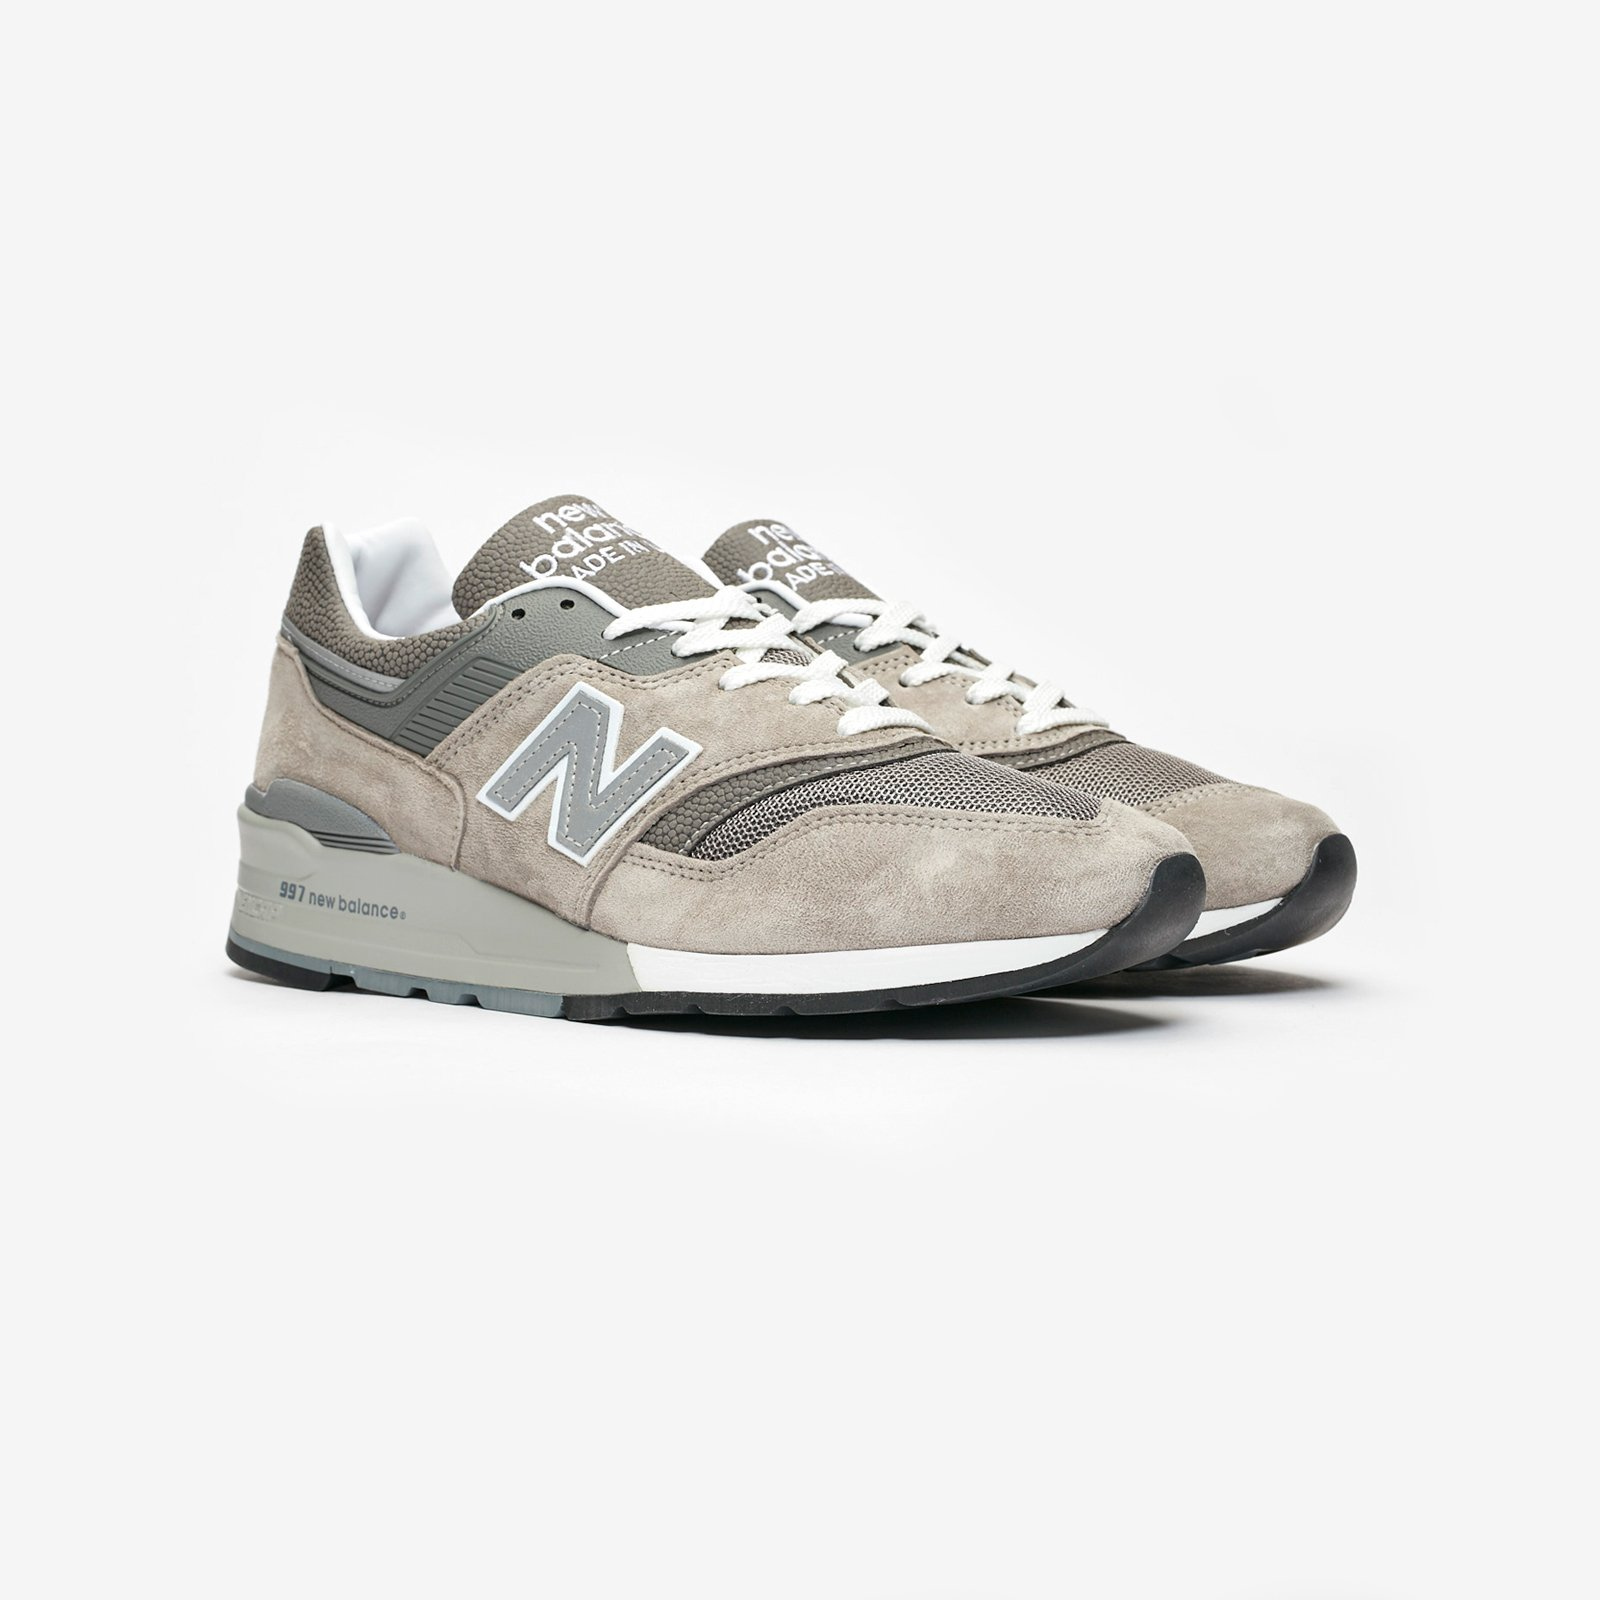 outlet store 65c9f 8439f New Balance M997 - M997gy - Sneakersnstuff | sneakers ...